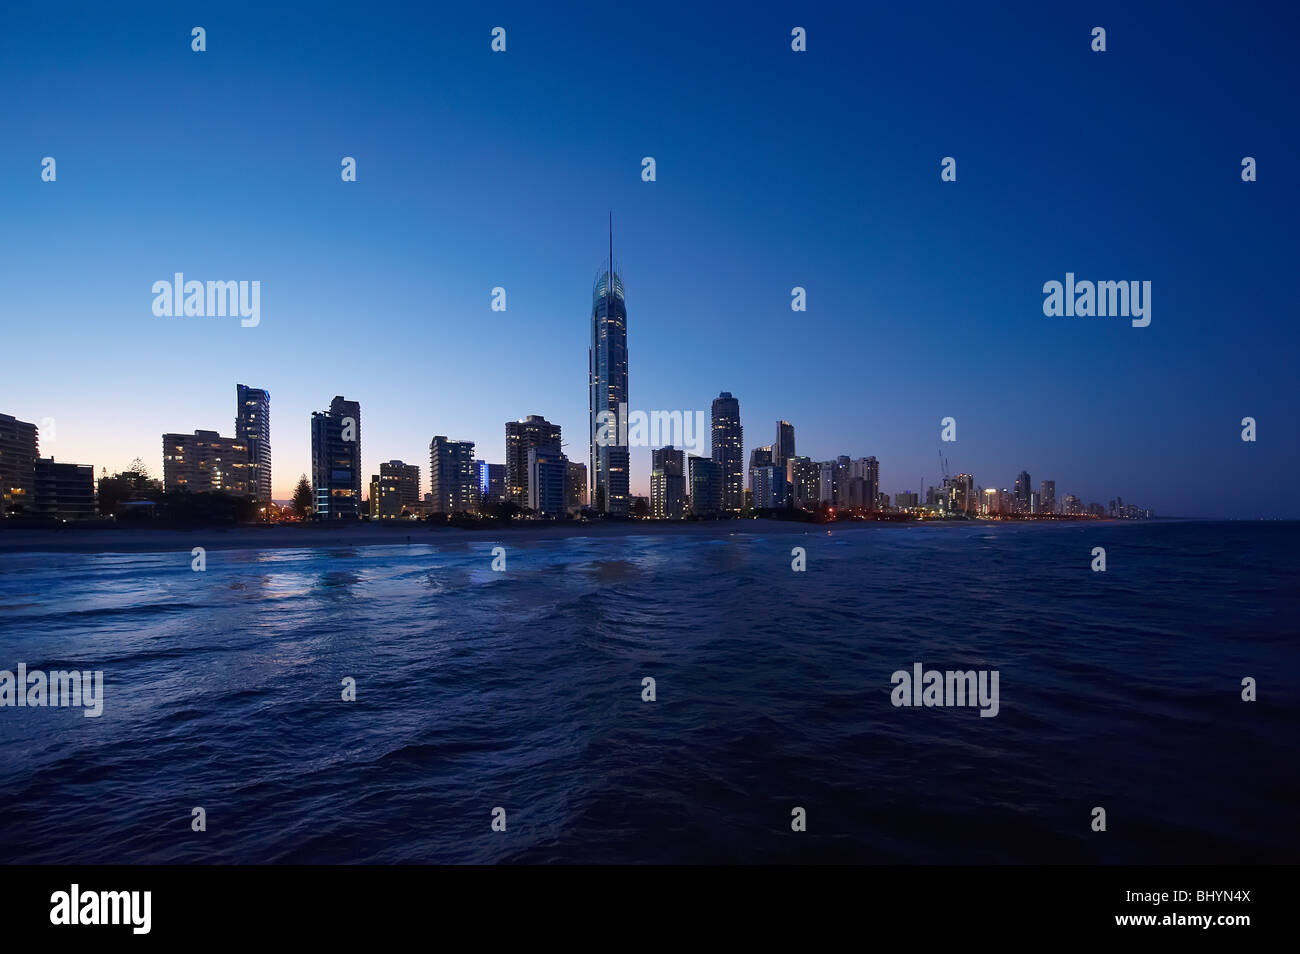 Surfers Paradise, Gold Coast Australia skyline at twilight  (low aerial view from a helicopter) - Stock Image